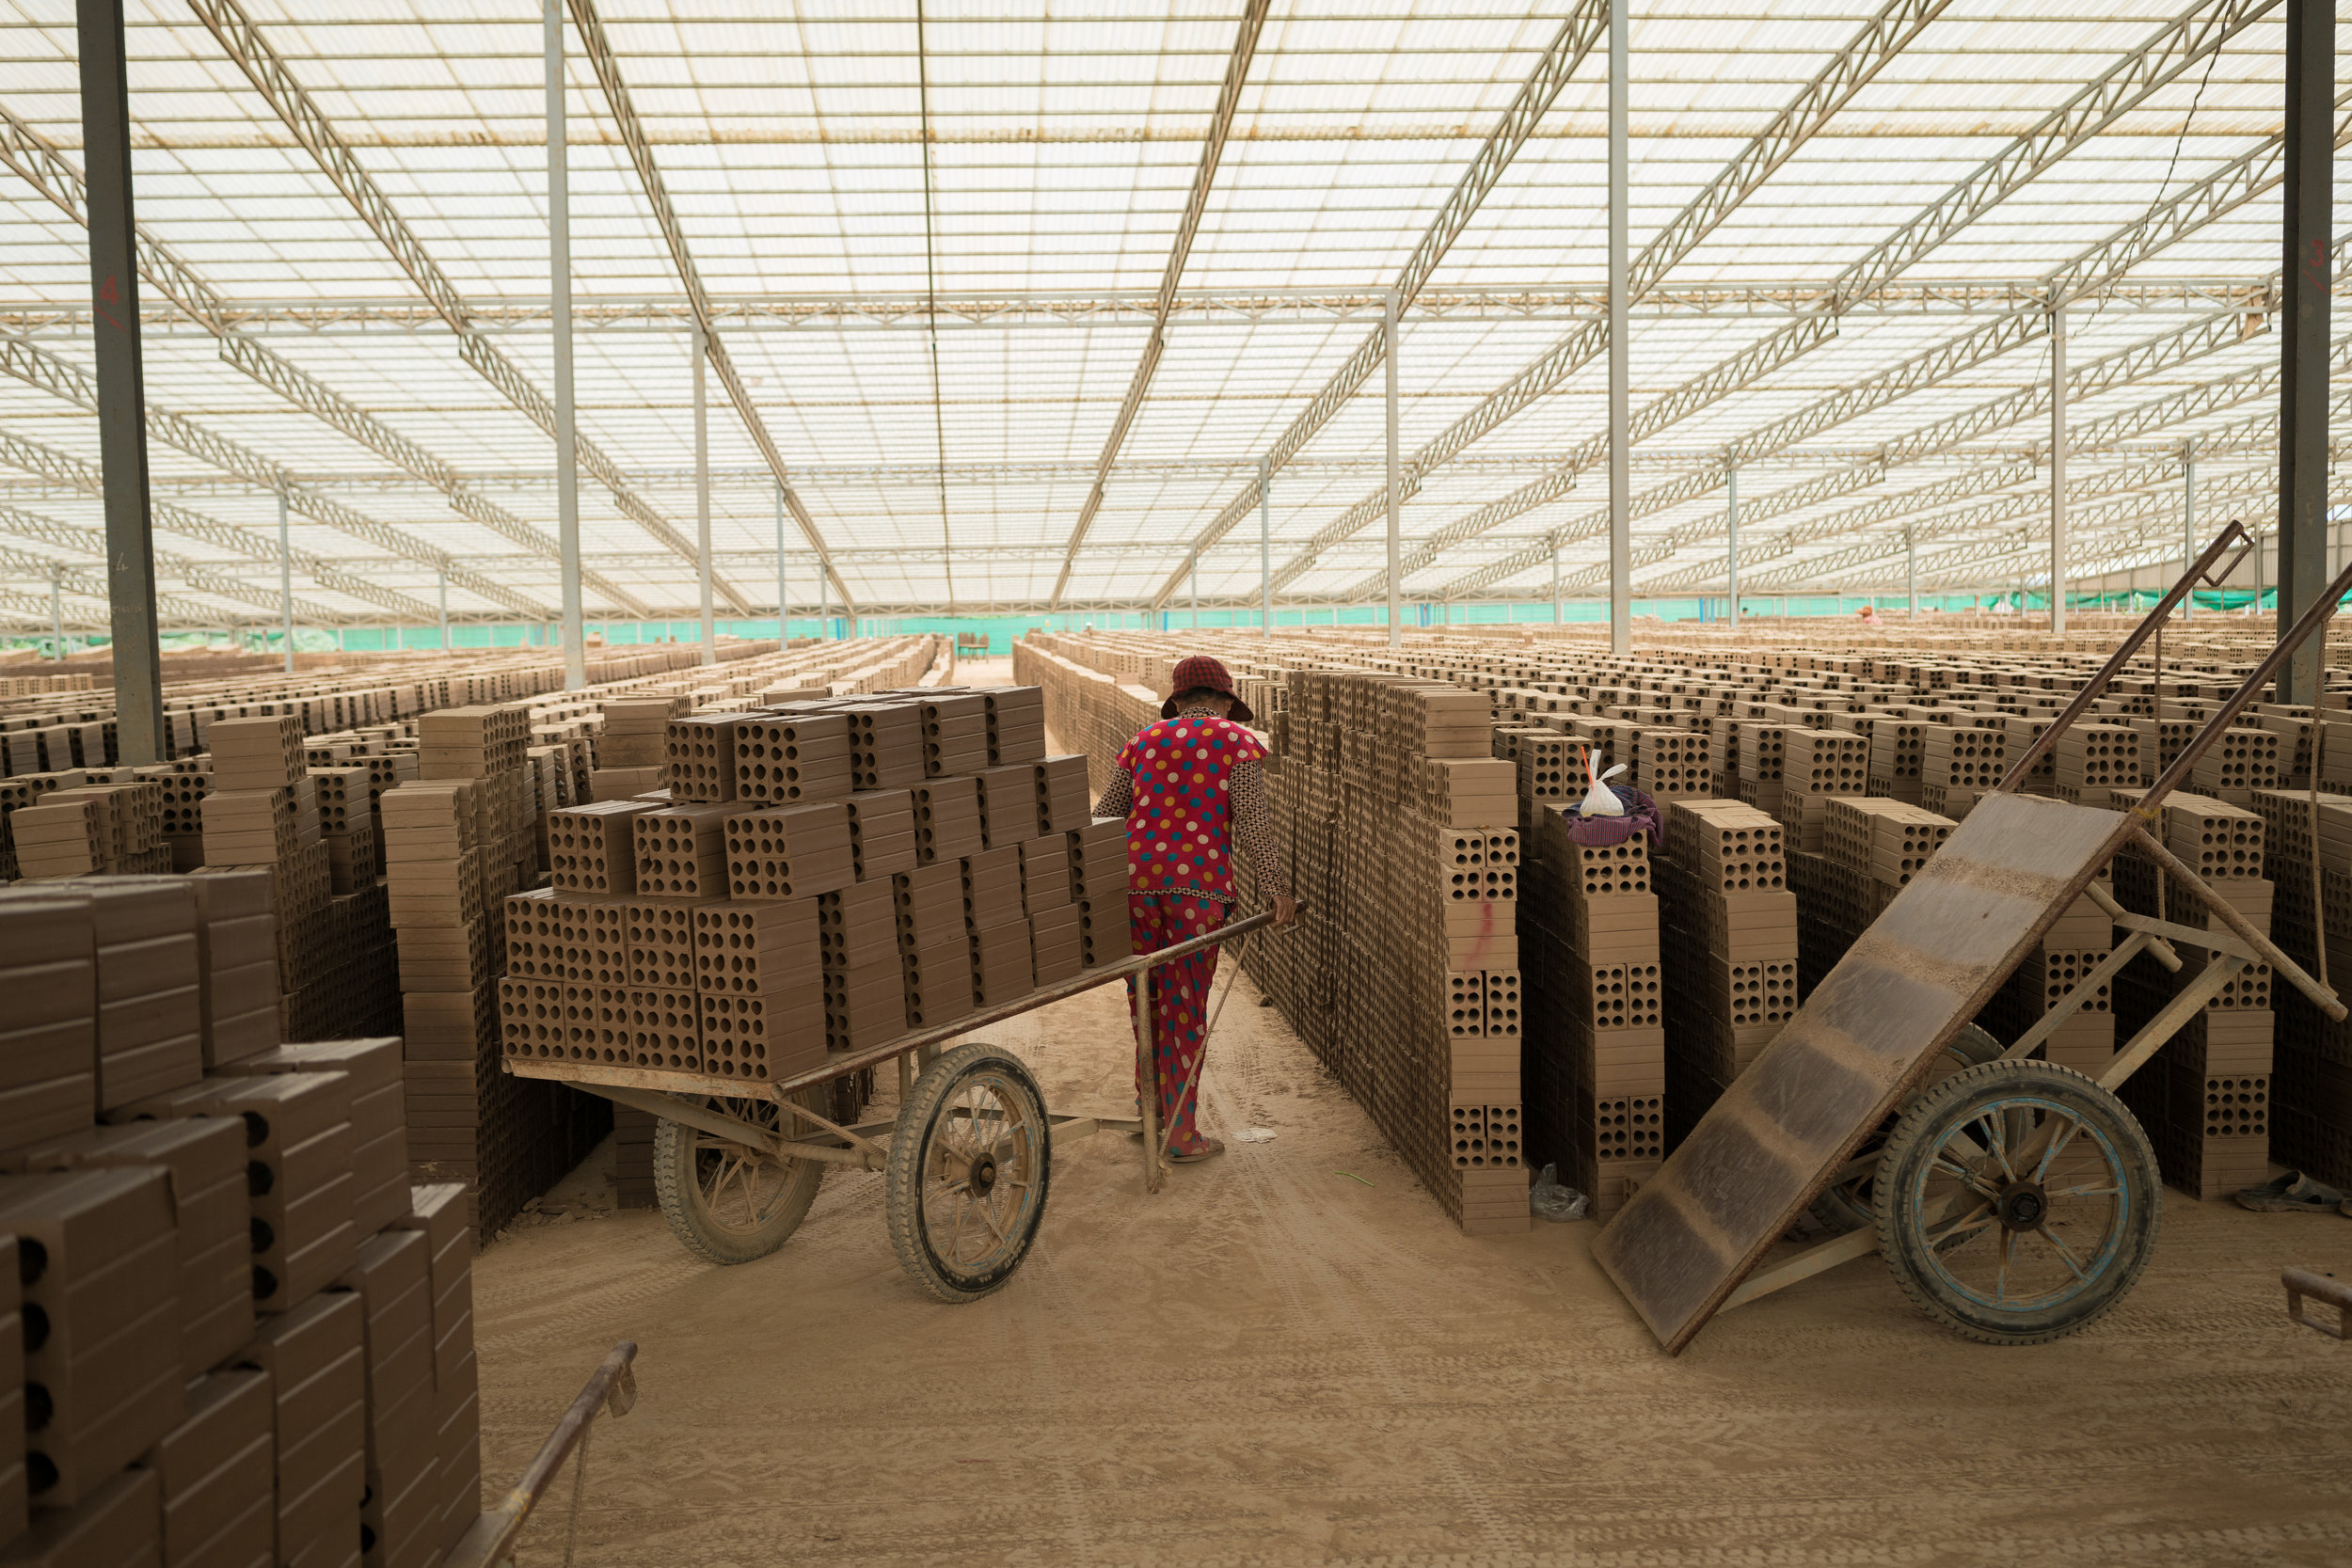 Carting bricks in a Cambodian brick kiln (Thomas Cristofoletti/Ruom. Copyright©2018 Royal Holloway, University of London)